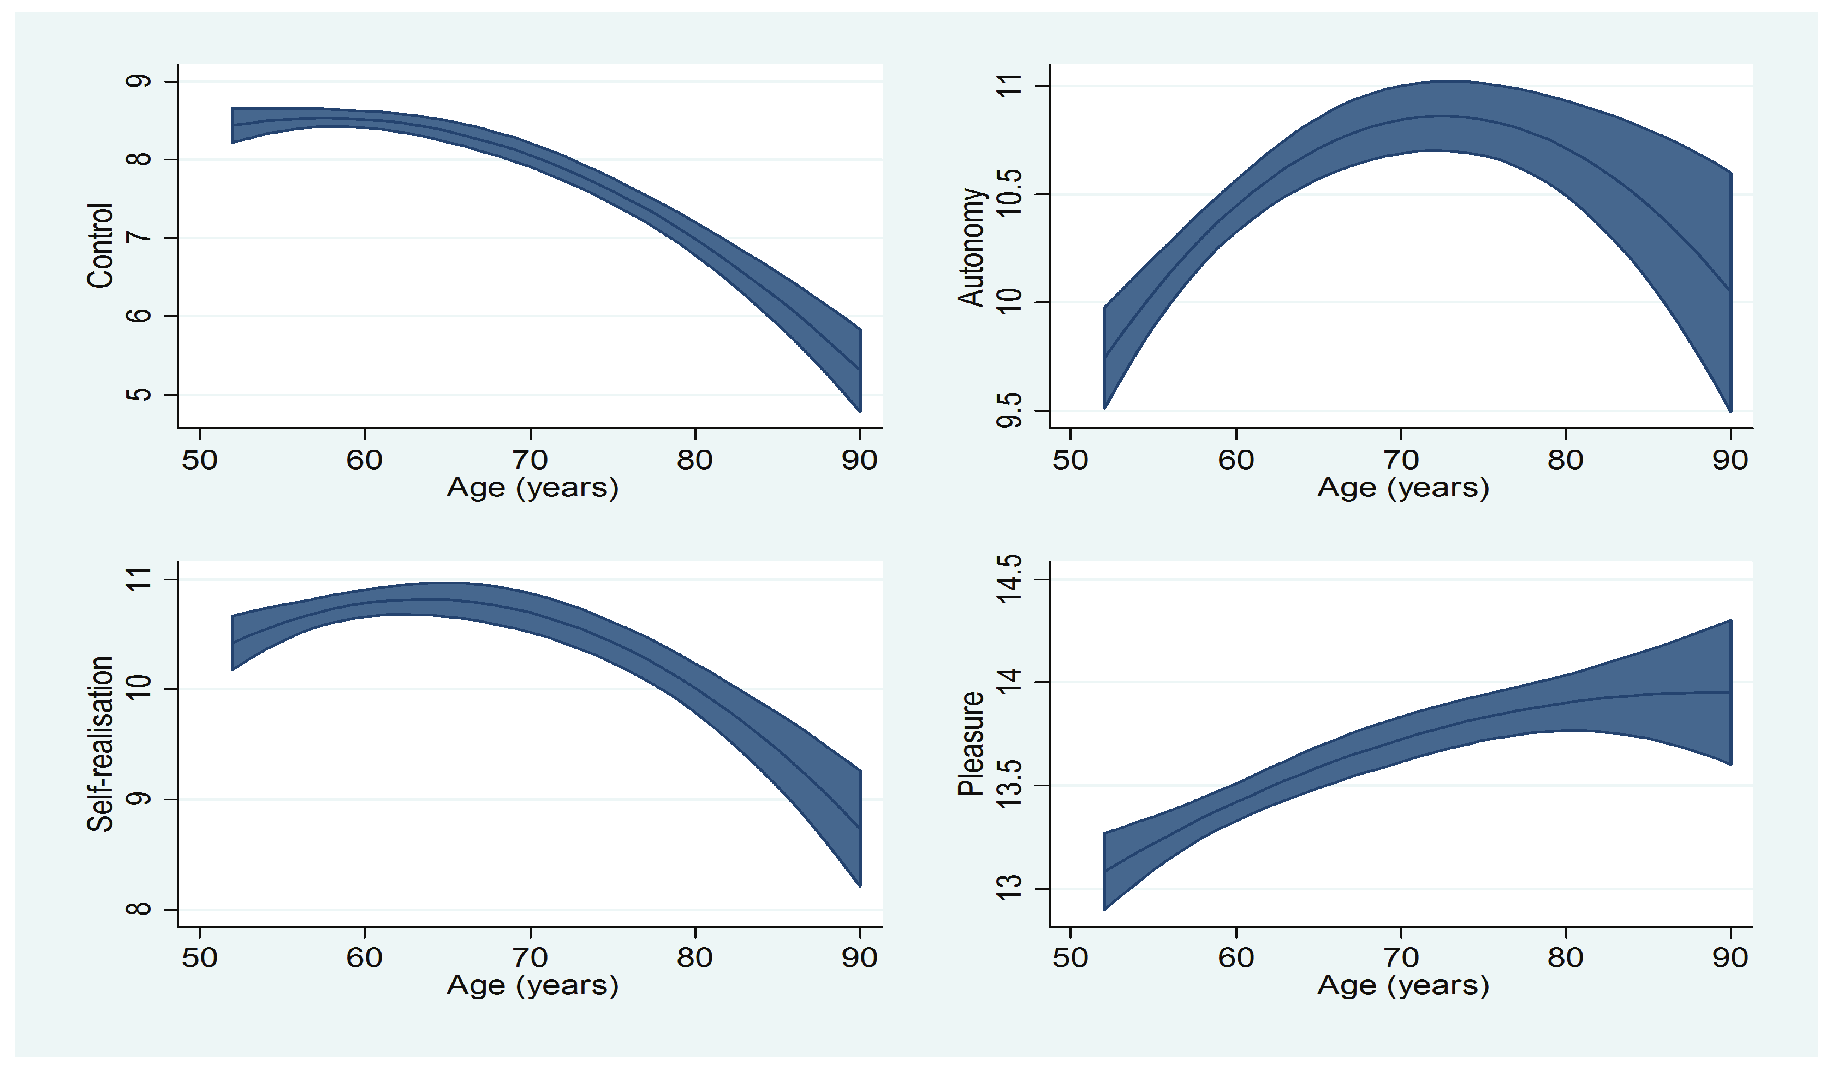 6 What Factors are Associated with Change in Older People s Quality of Life?